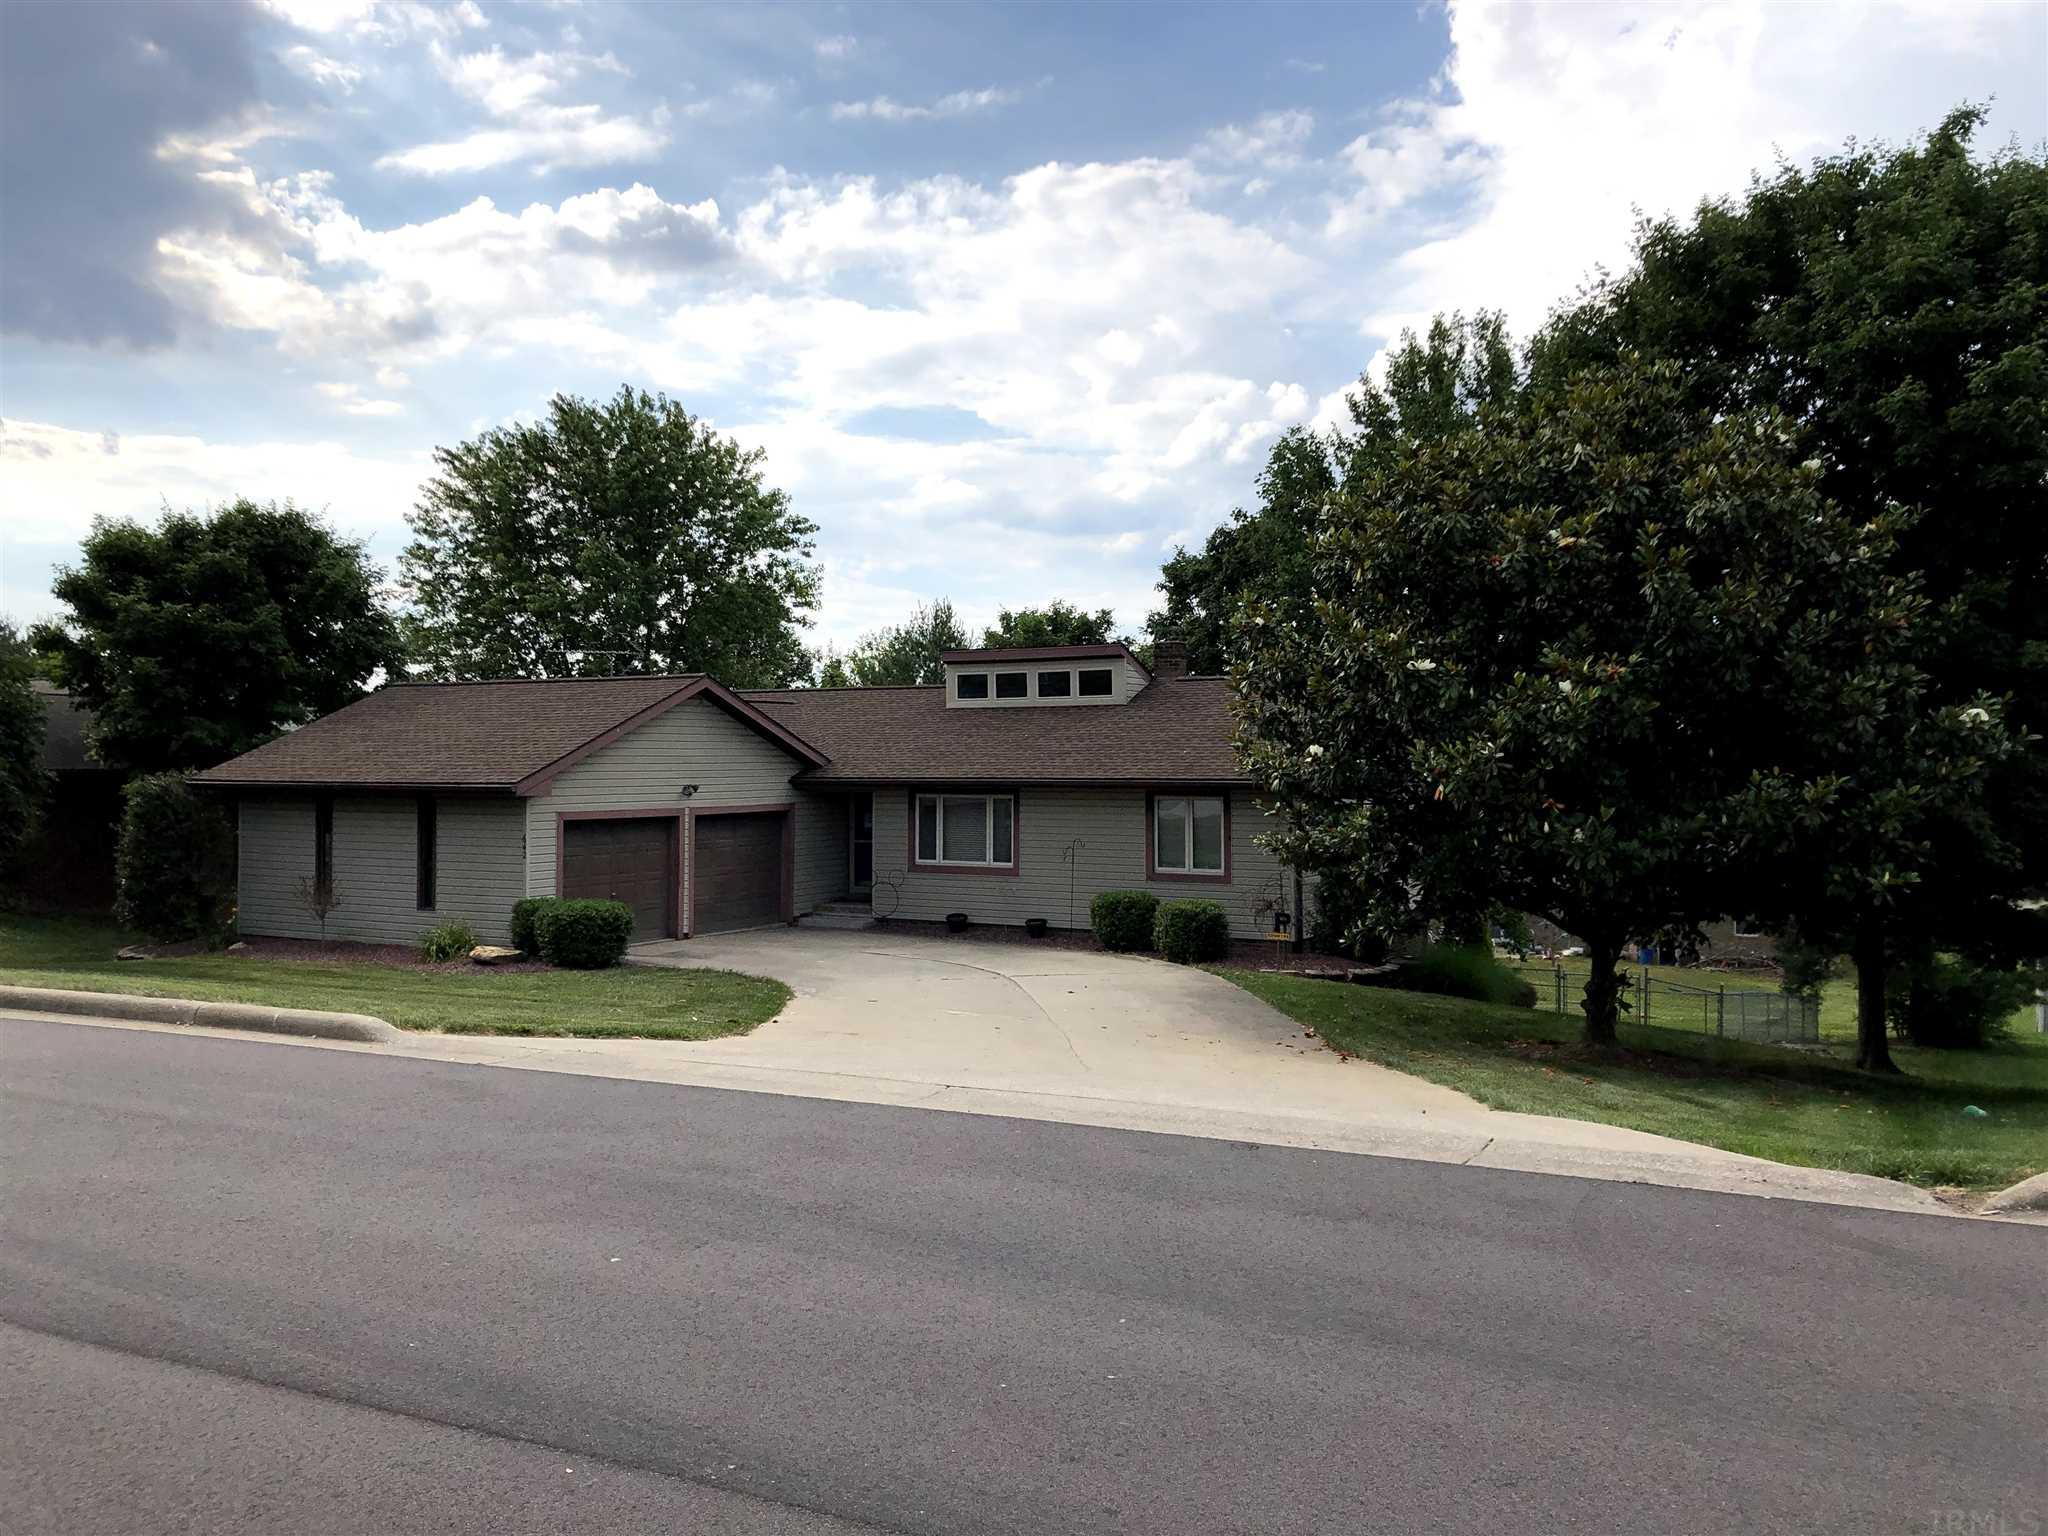 Motivated Sellers!! Check out this 3 bedroom, 2 and 1/2 bath home at its great and convenient location! Walking into the home, you will notice the open concept of the living room and dining room with recently replaced (2019) skylights. Upon entering the kitchen, you will notice the Shamrock cabinets and all the space and counter top space they provide. Off the dining room, you can step out onto the porch to enjoy your morning coffee or evening visit! Also, on the main level, you will find the master bedroom with a walk-in closet and master bath. The 2nd and 3rd bedrooms are off the living room with a guest bathroom between them. As you go in the basement, you will find a 28' x 24' spacious area with a bar and half bath for enjoying family time or entertaining purposes. The floor in the basement was stained in 2017. The basement also offers great storage space and a dark room. As you exit the basement door, you enter the fenced in backyard, great for little ones and/or pets to enjoy! Don't miss out on checking this home out!